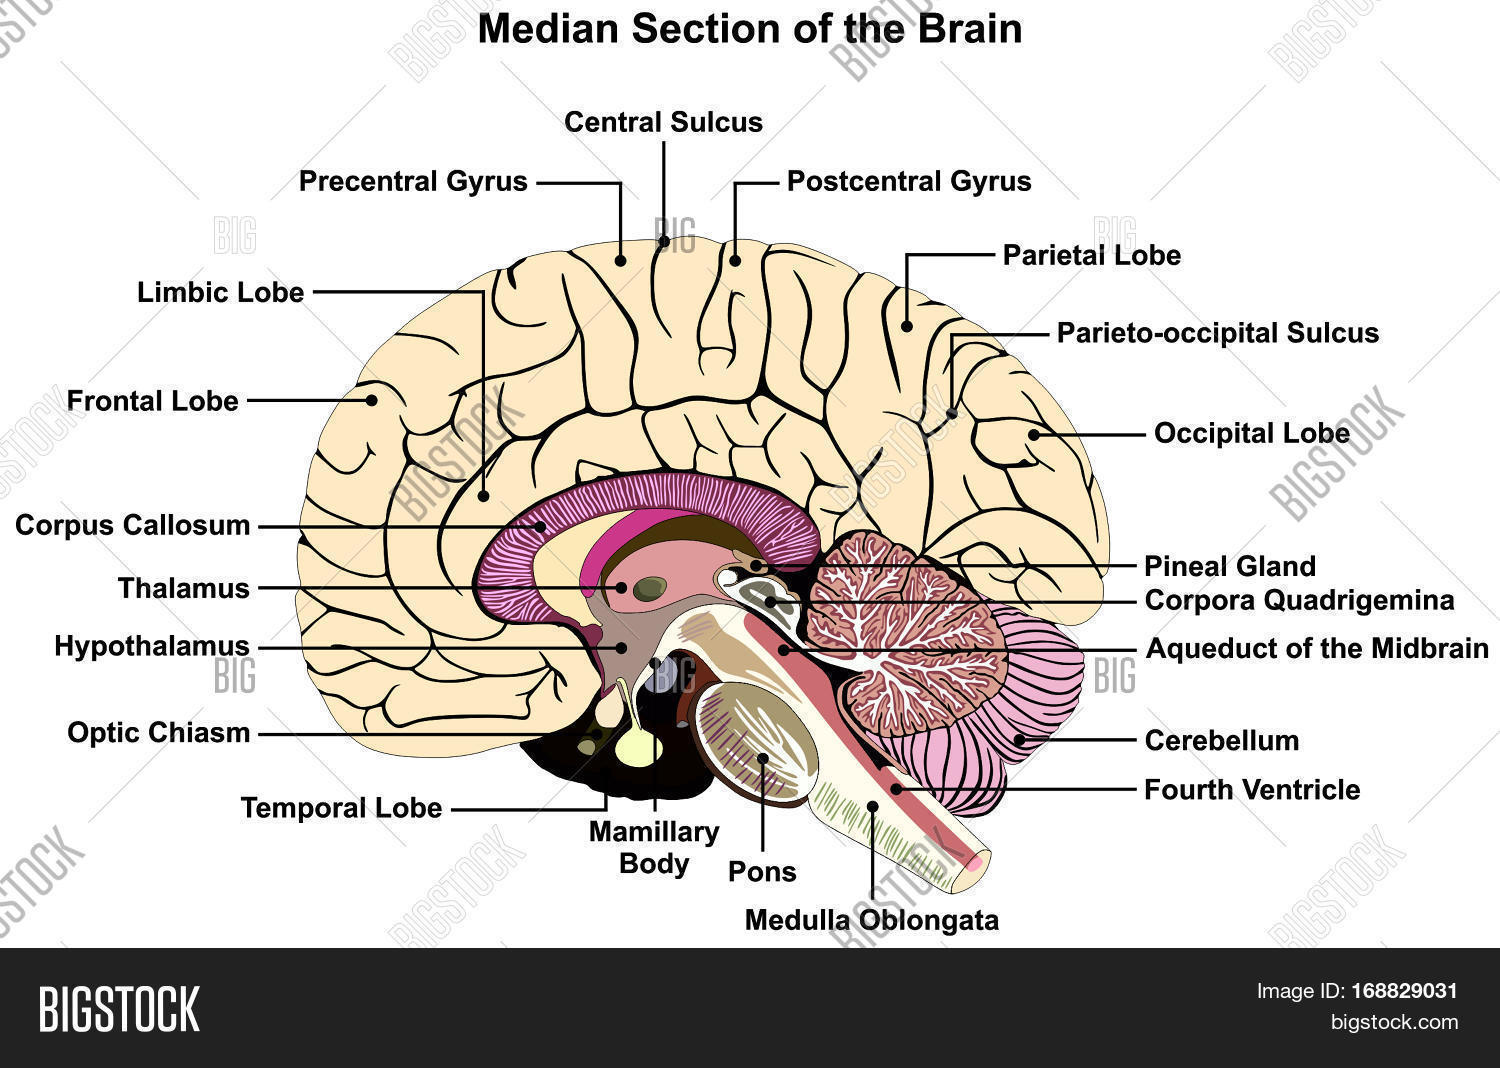 Median section human brain image photo bigstock median section of human brain anatomical structure diagram infographic chart with all parts cerebellum thalamus ccuart Choice Image